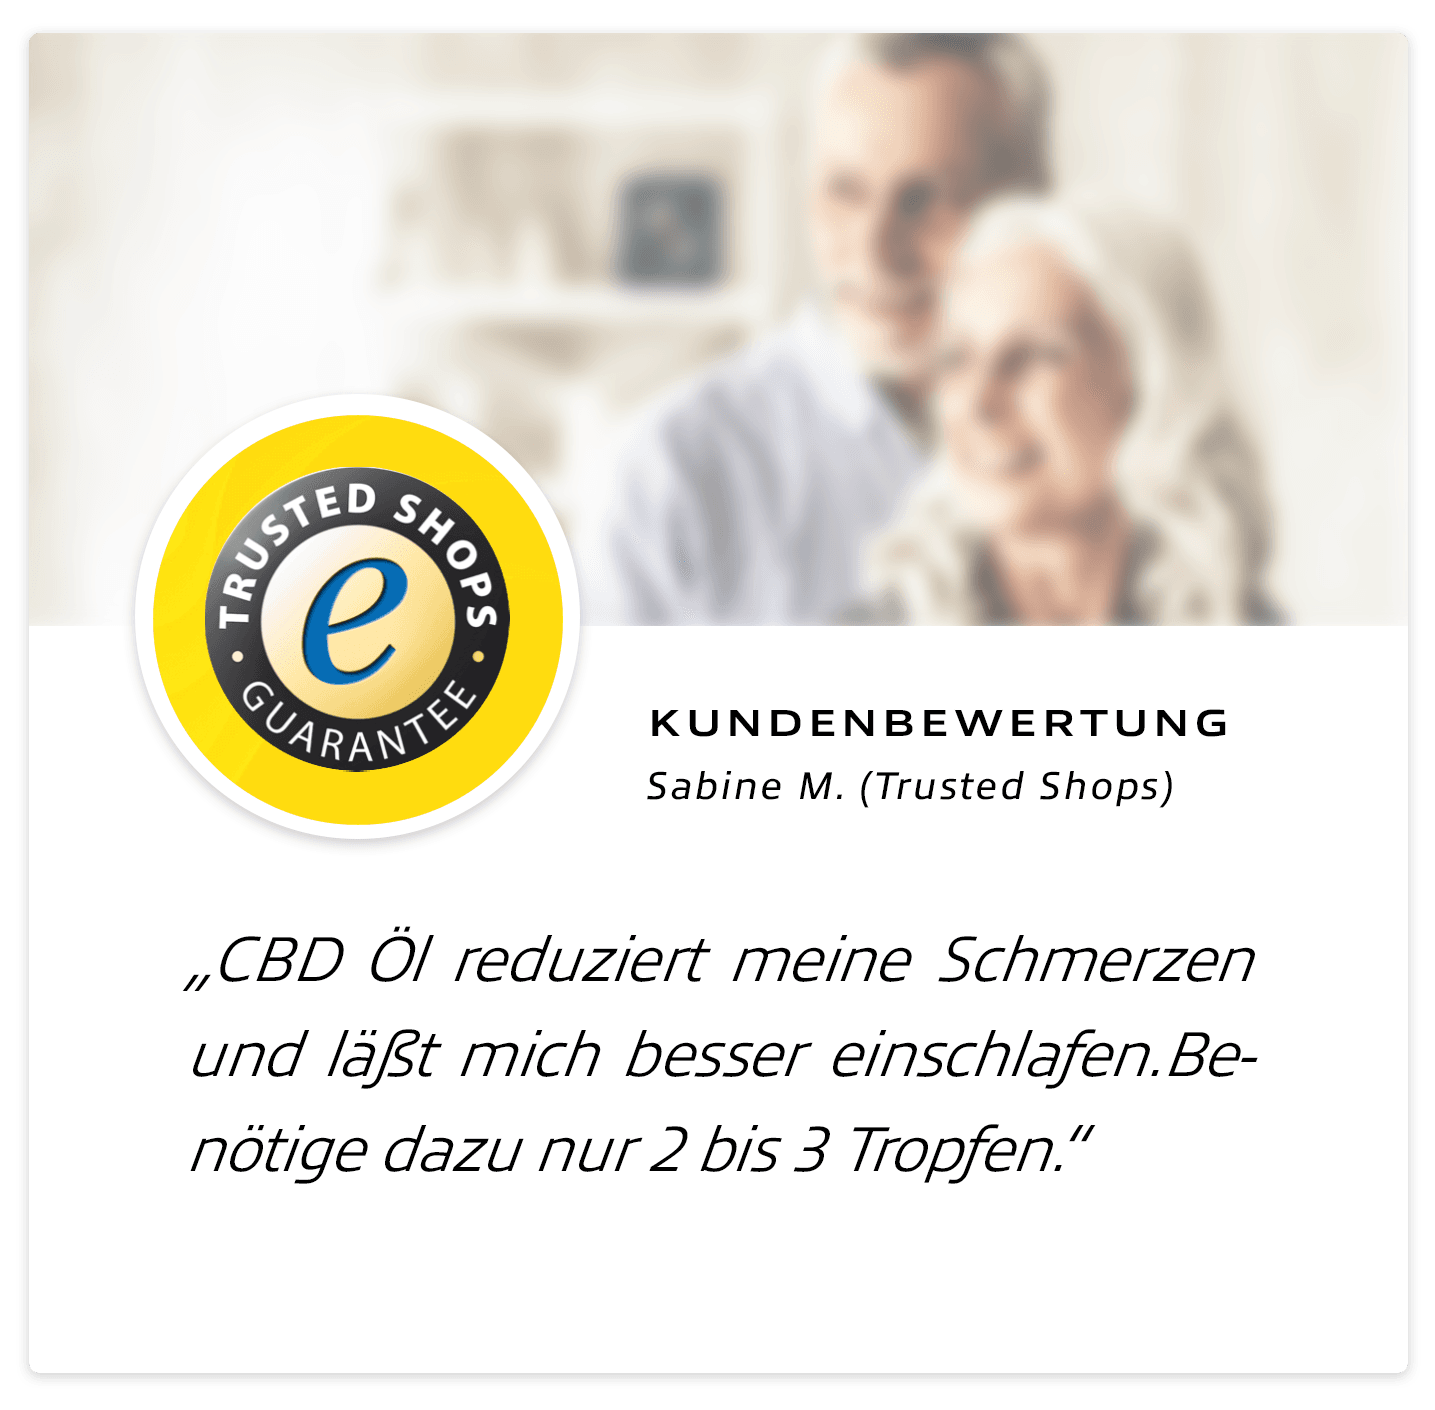 CBD-DEAL24 Erfahrungen: Trusted Shops 01